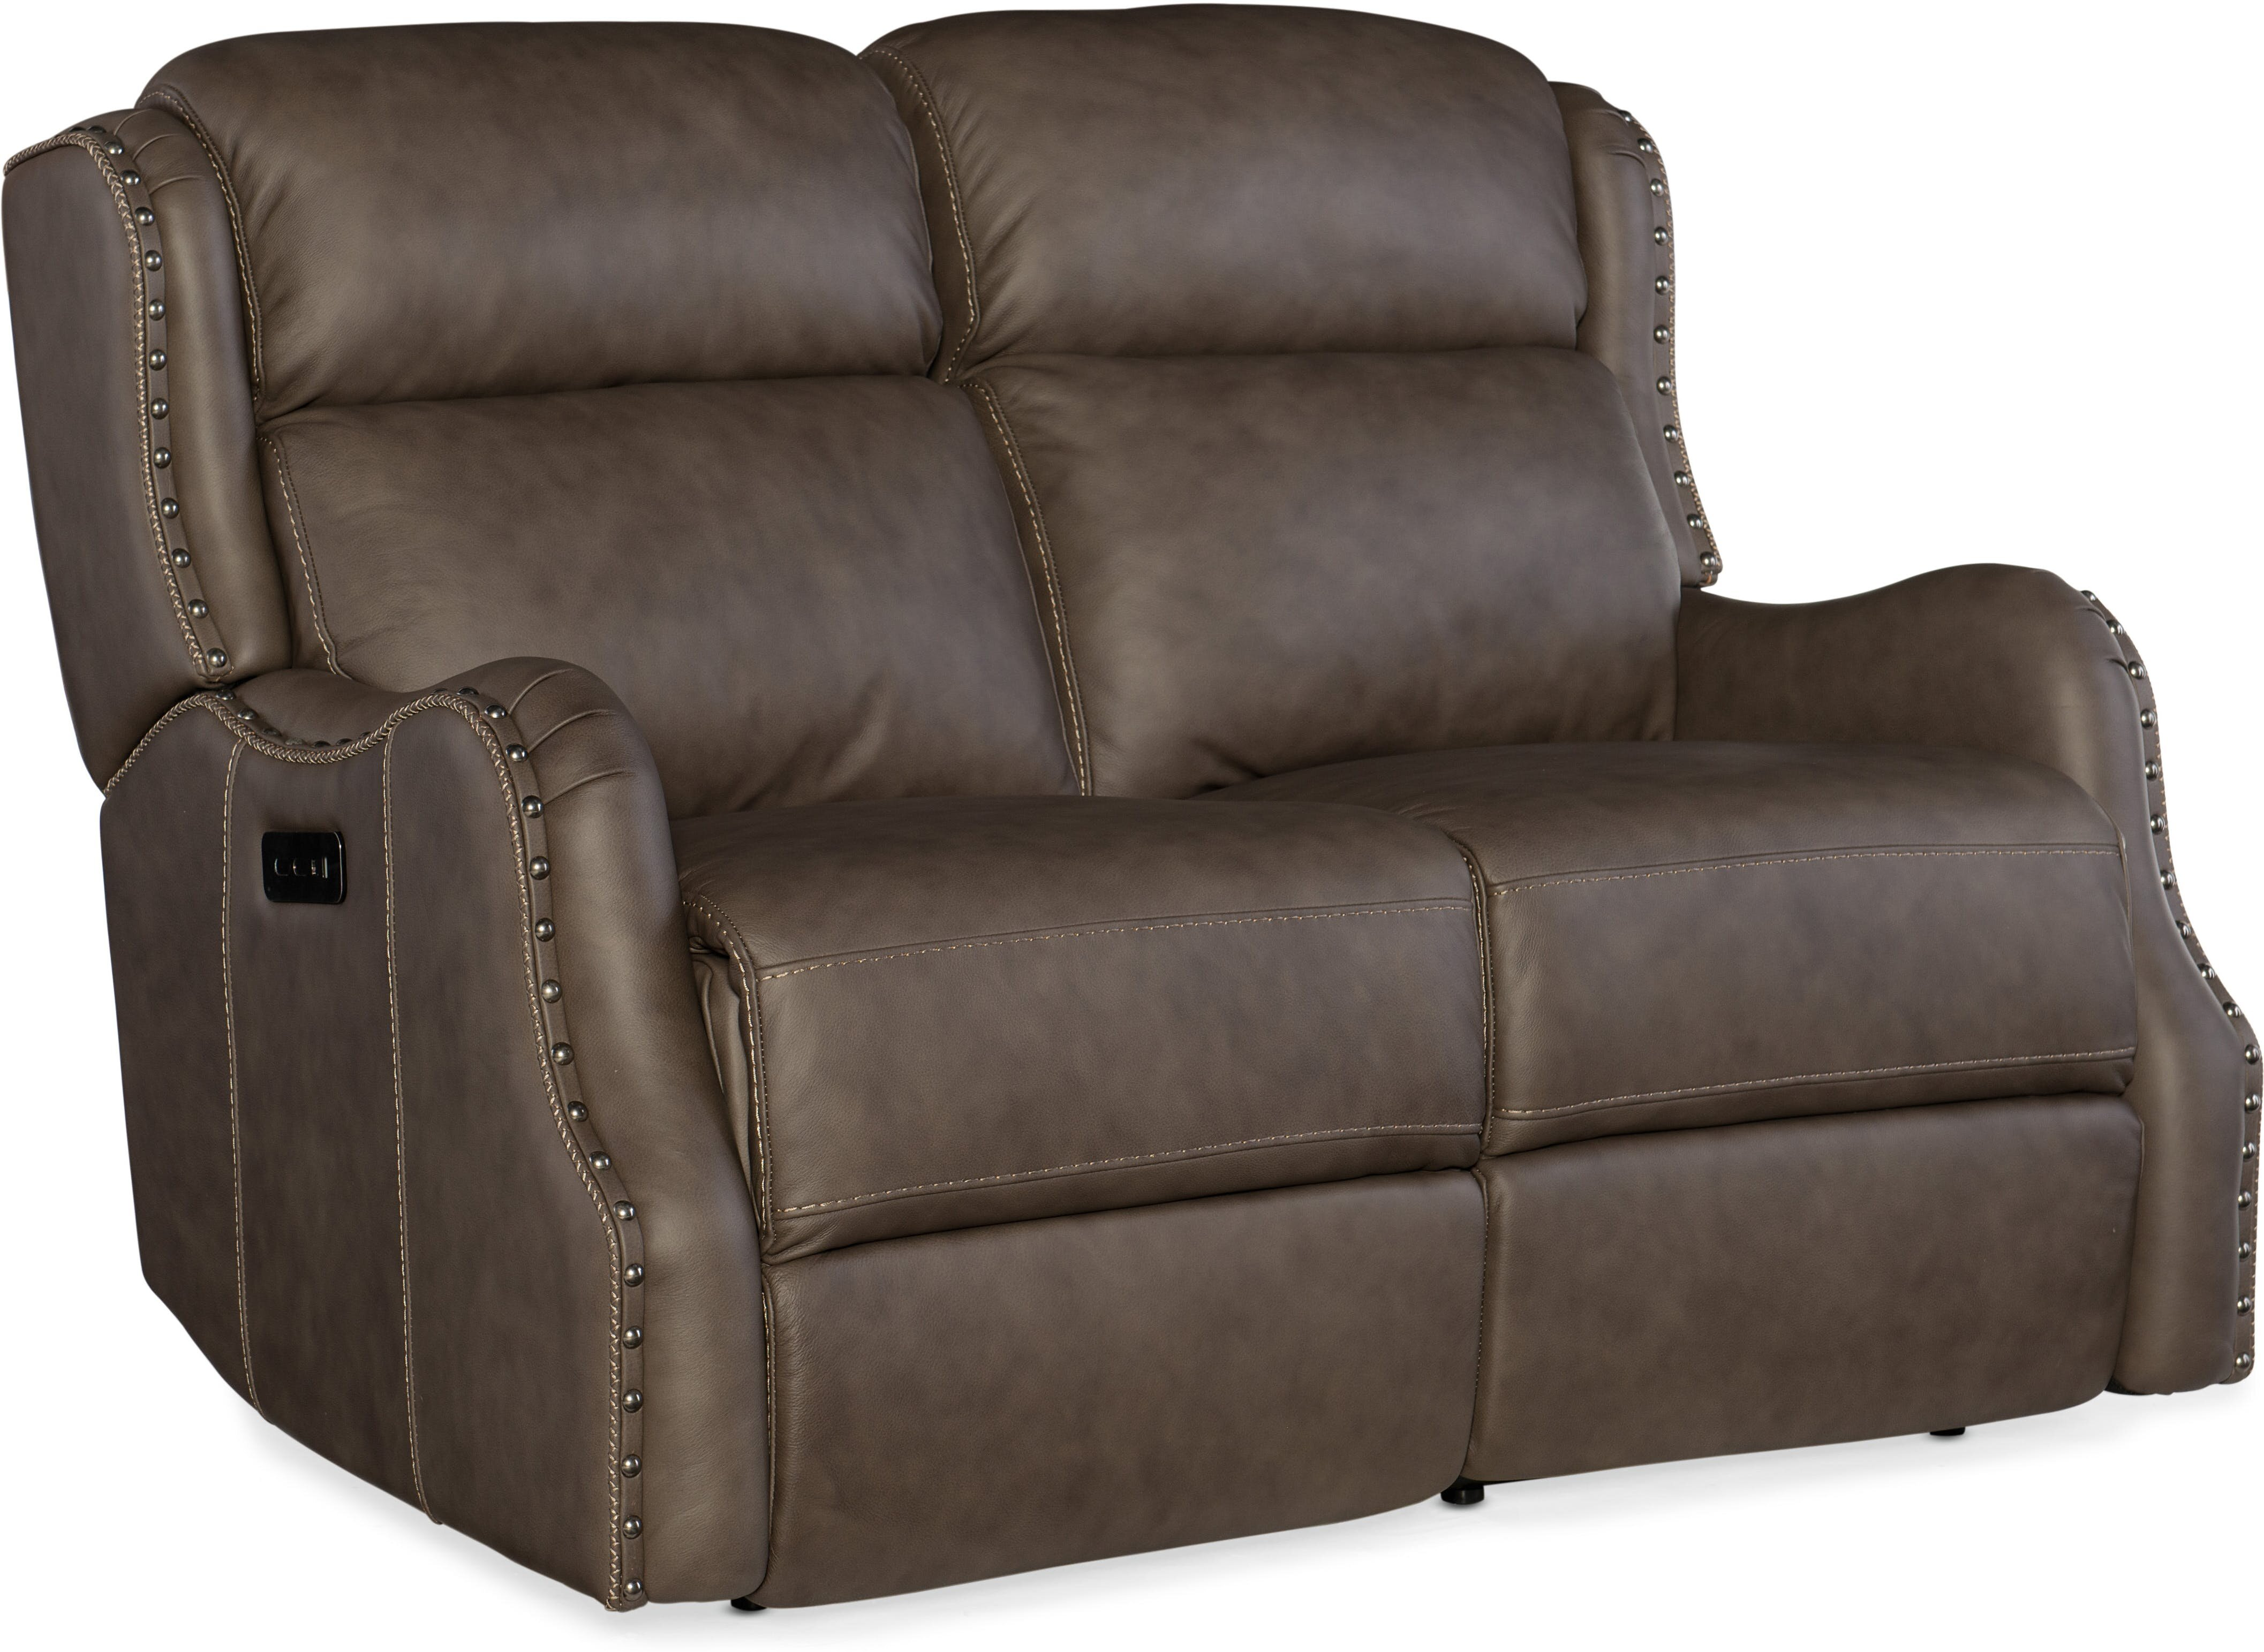 Prime Sawyer Power Leather Reclining Loveseat Machost Co Dining Chair Design Ideas Machostcouk